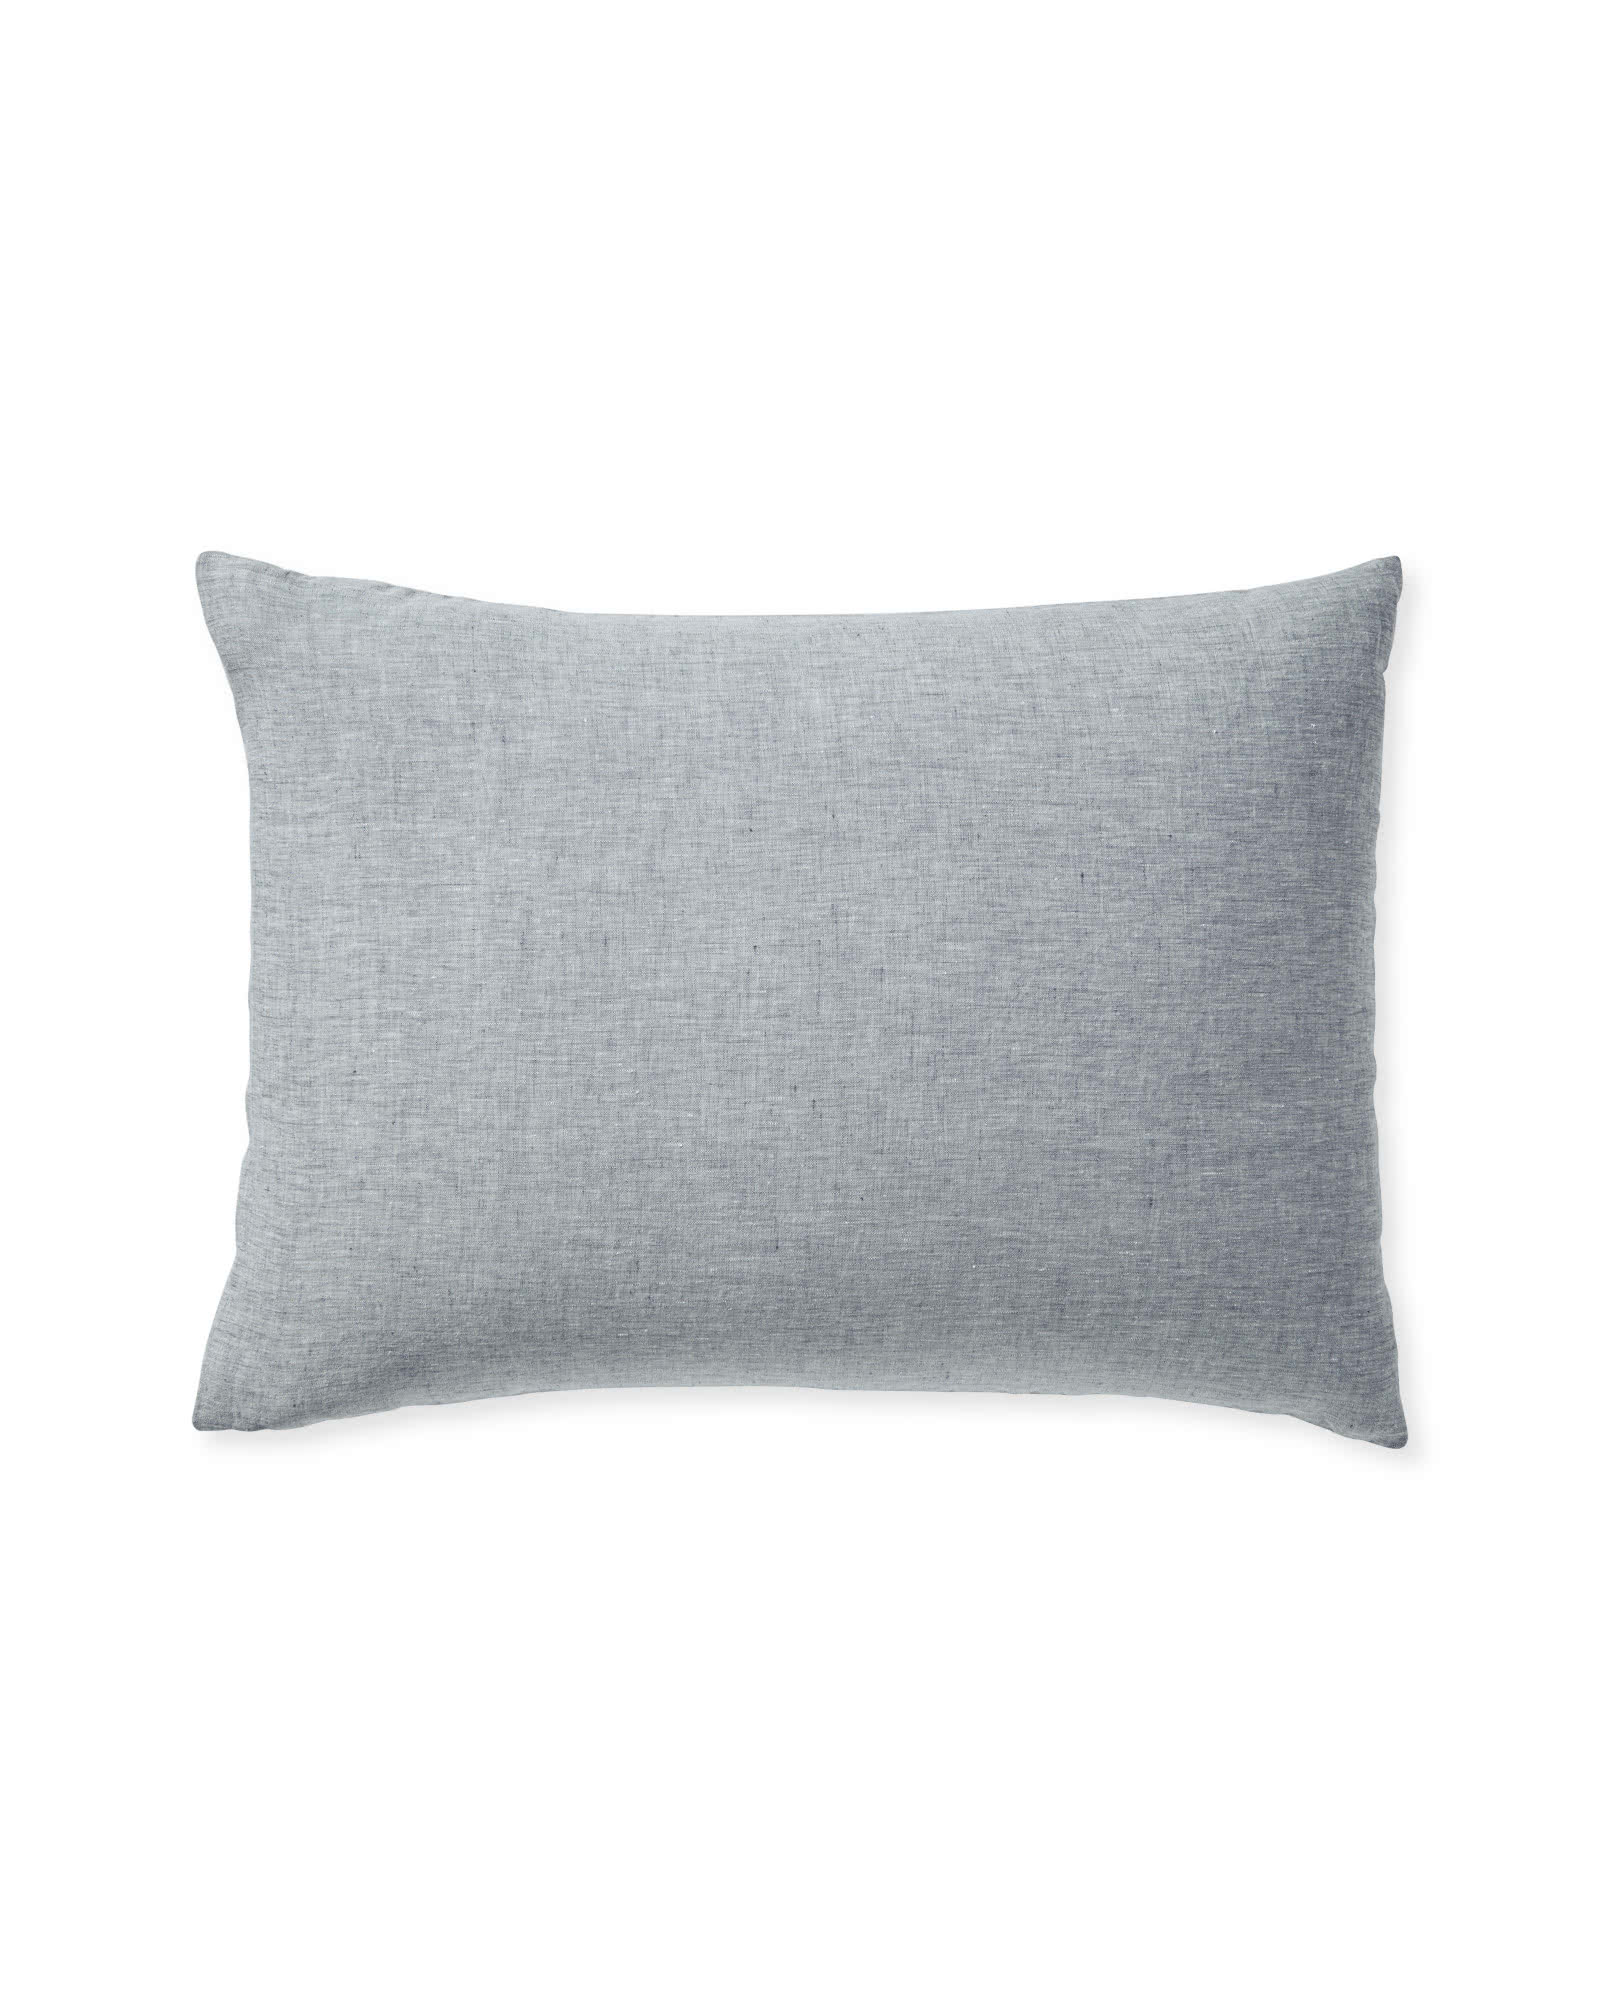 Cavallo Pillowcases (Extra Set of 2), Navy Chambray